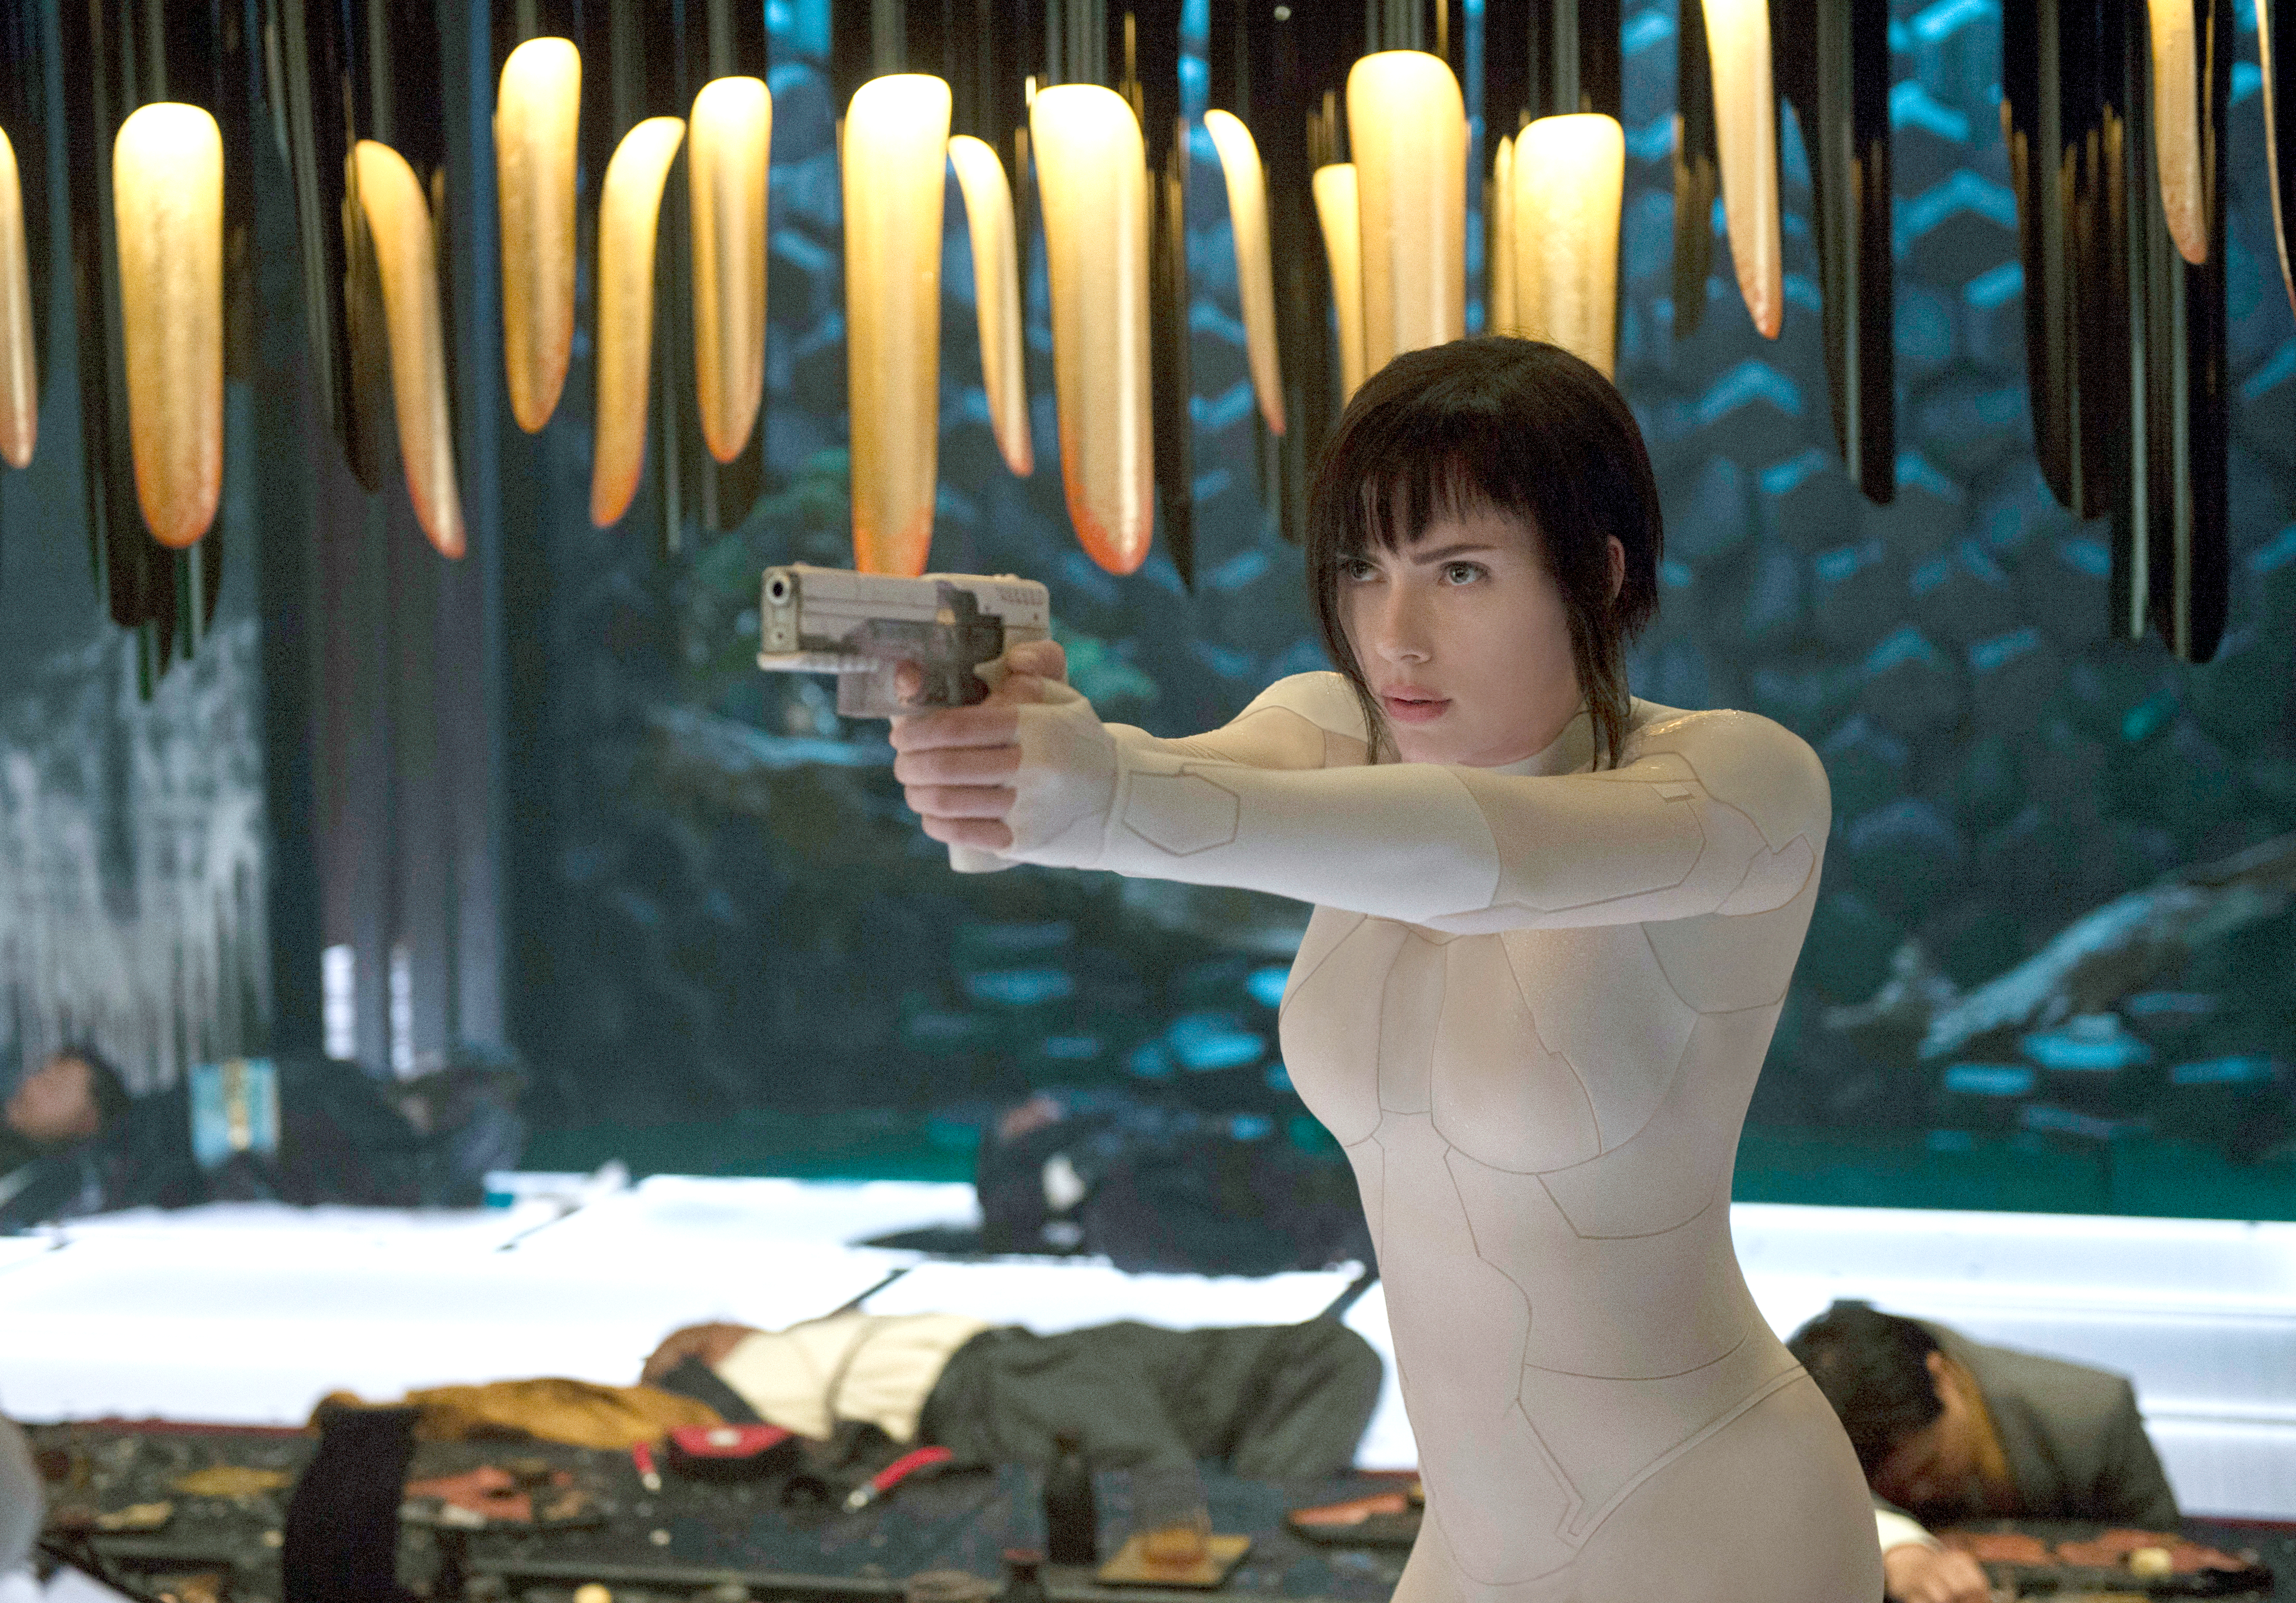 """Scarlett Johansson appears in a scene from """"Ghost in the Shell."""" (Jasin Boland/Paramount Pictures and DreamWorks Pictures via AP)"""